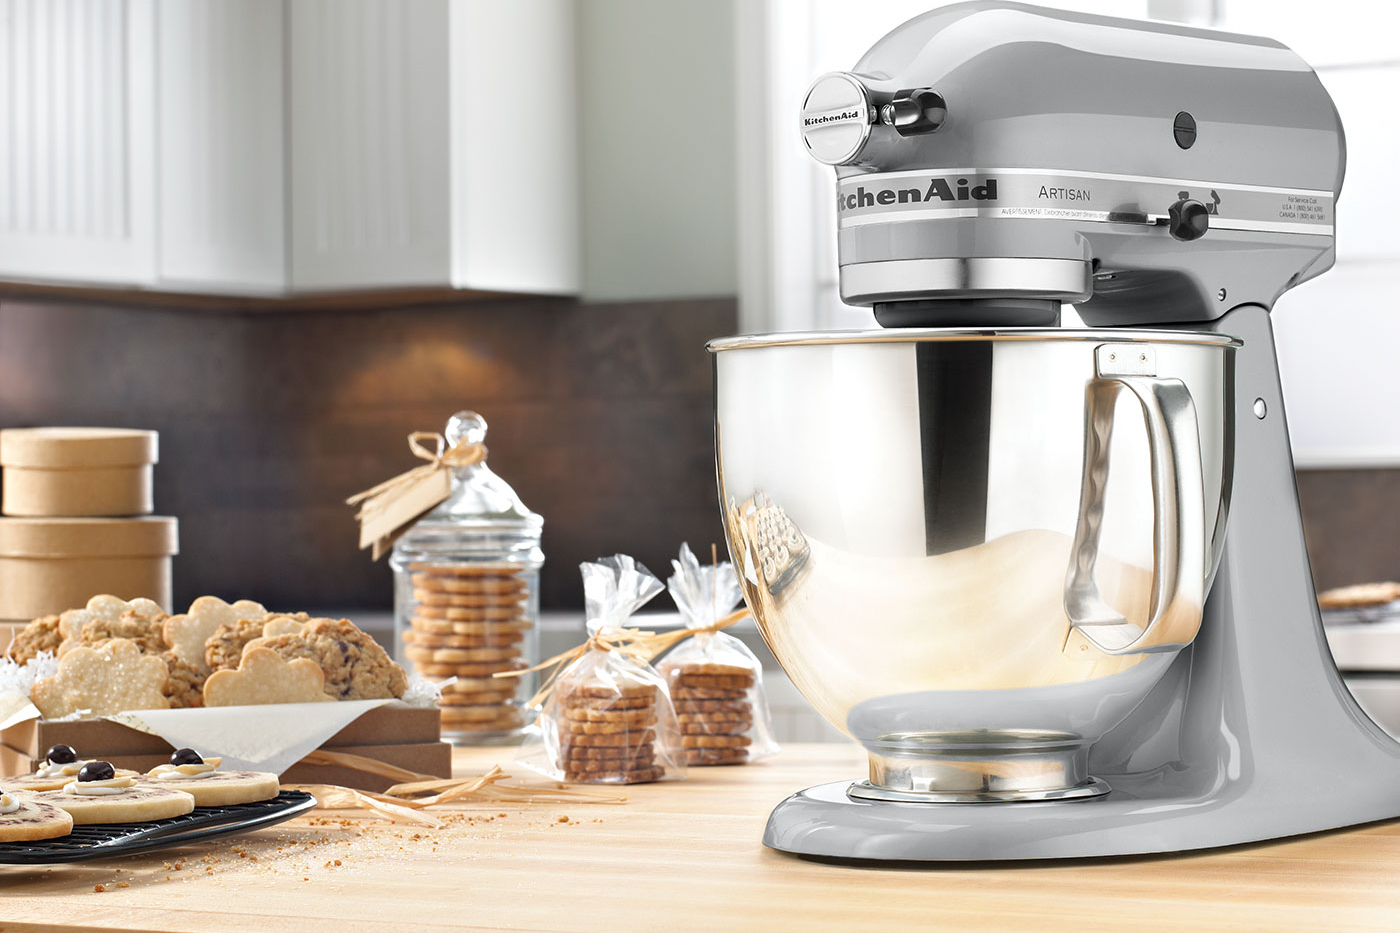 Kitchenaid Artisan stand mixer BIFL